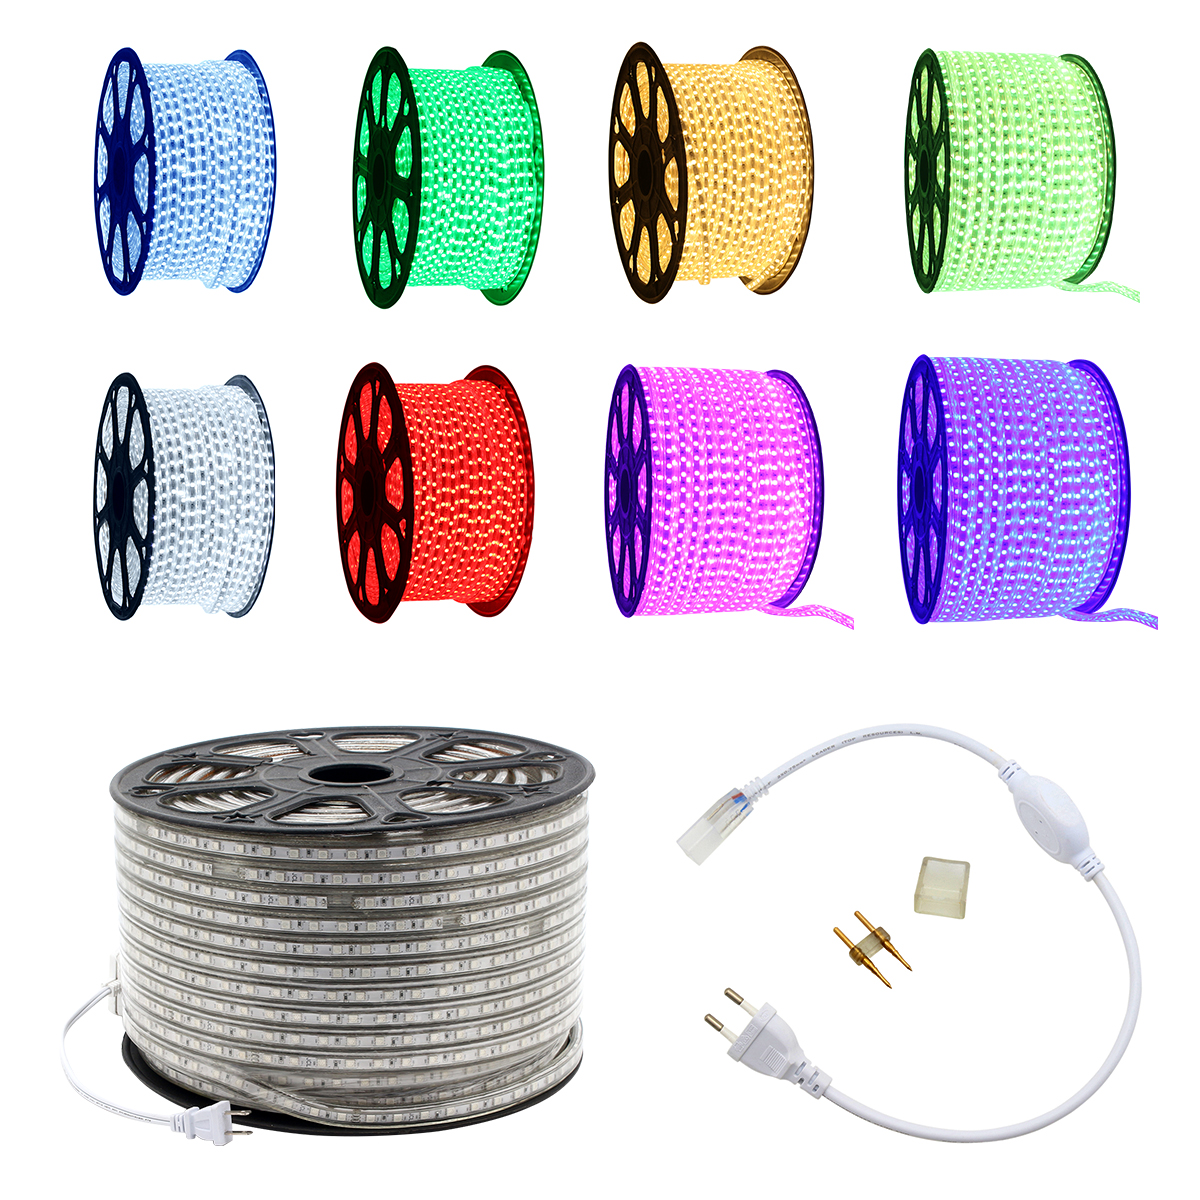 220V 50M LED Strip Light 60 LEDs/ meter IP67 Waterproof Ultra Bright Flexible 5050 SMD LED Outdoor Garden Home Strip Rope Light sales of new sensor light strip with high quality and convenient multi functional 3w 6w outdoor home decor led strip light lamps